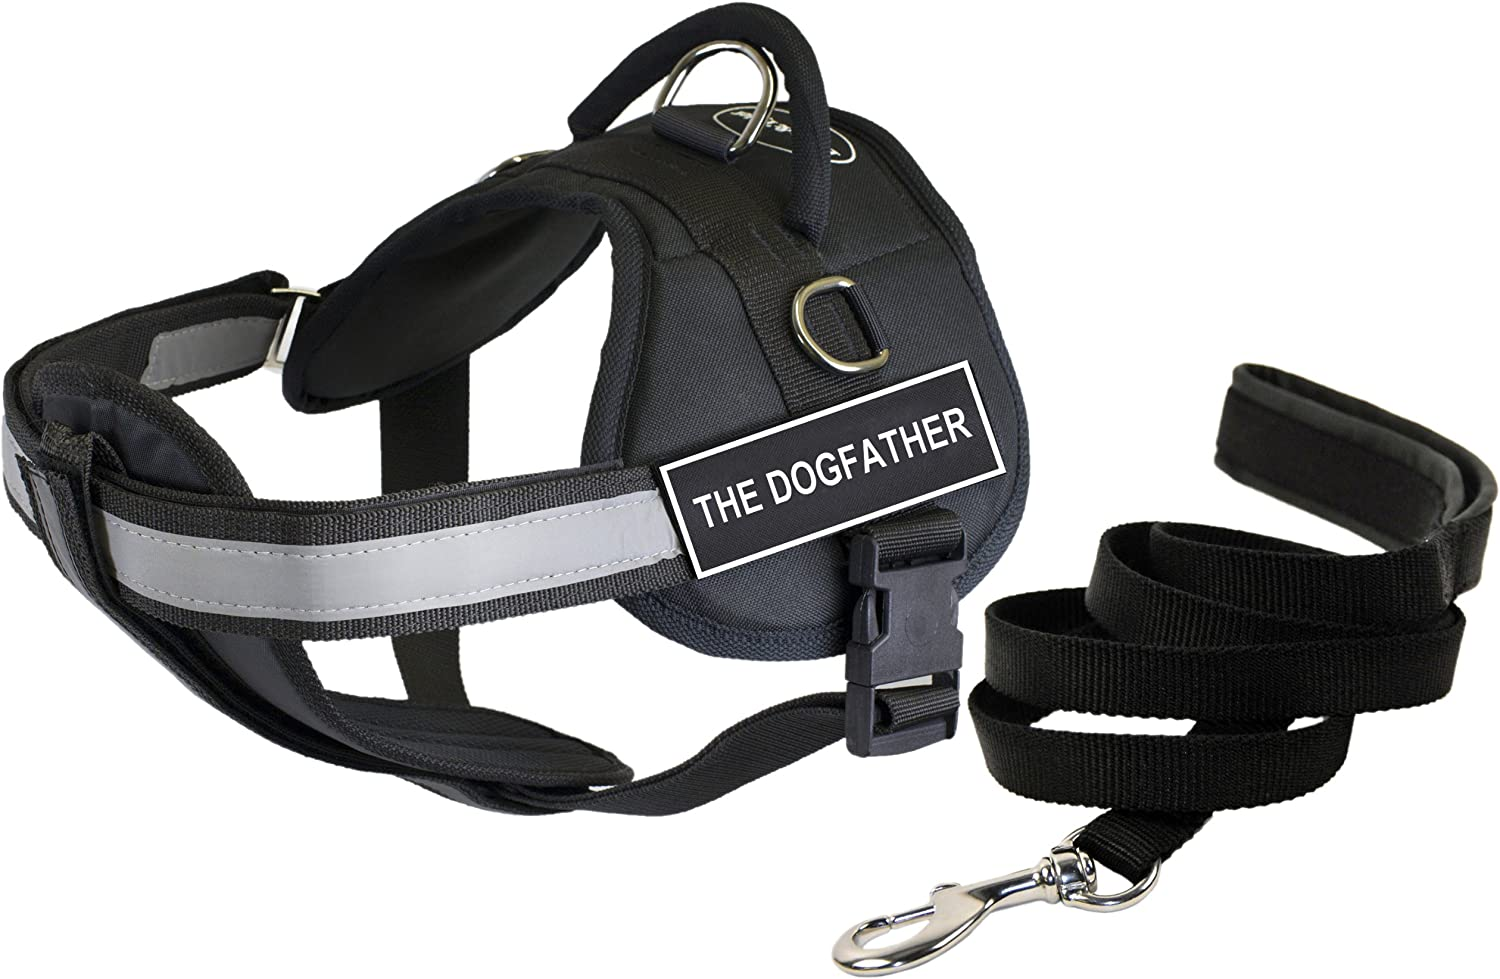 Dean & Tyler's DT Works THE DOGFATHER Harness with Chest Padding, Medium, and 6 ft Padded Puppy Leash.